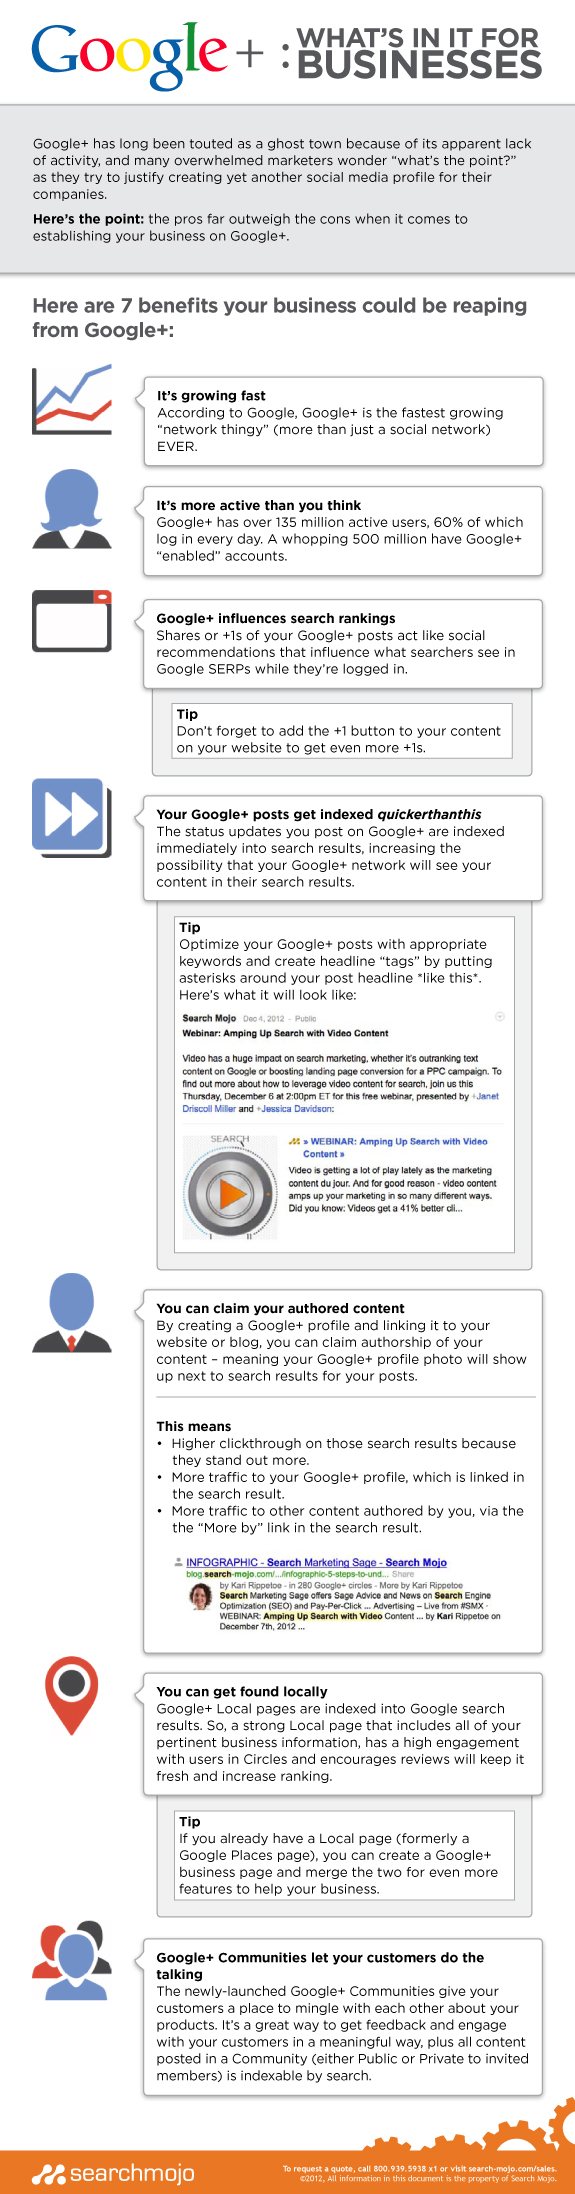 Google+: What's In It for Business